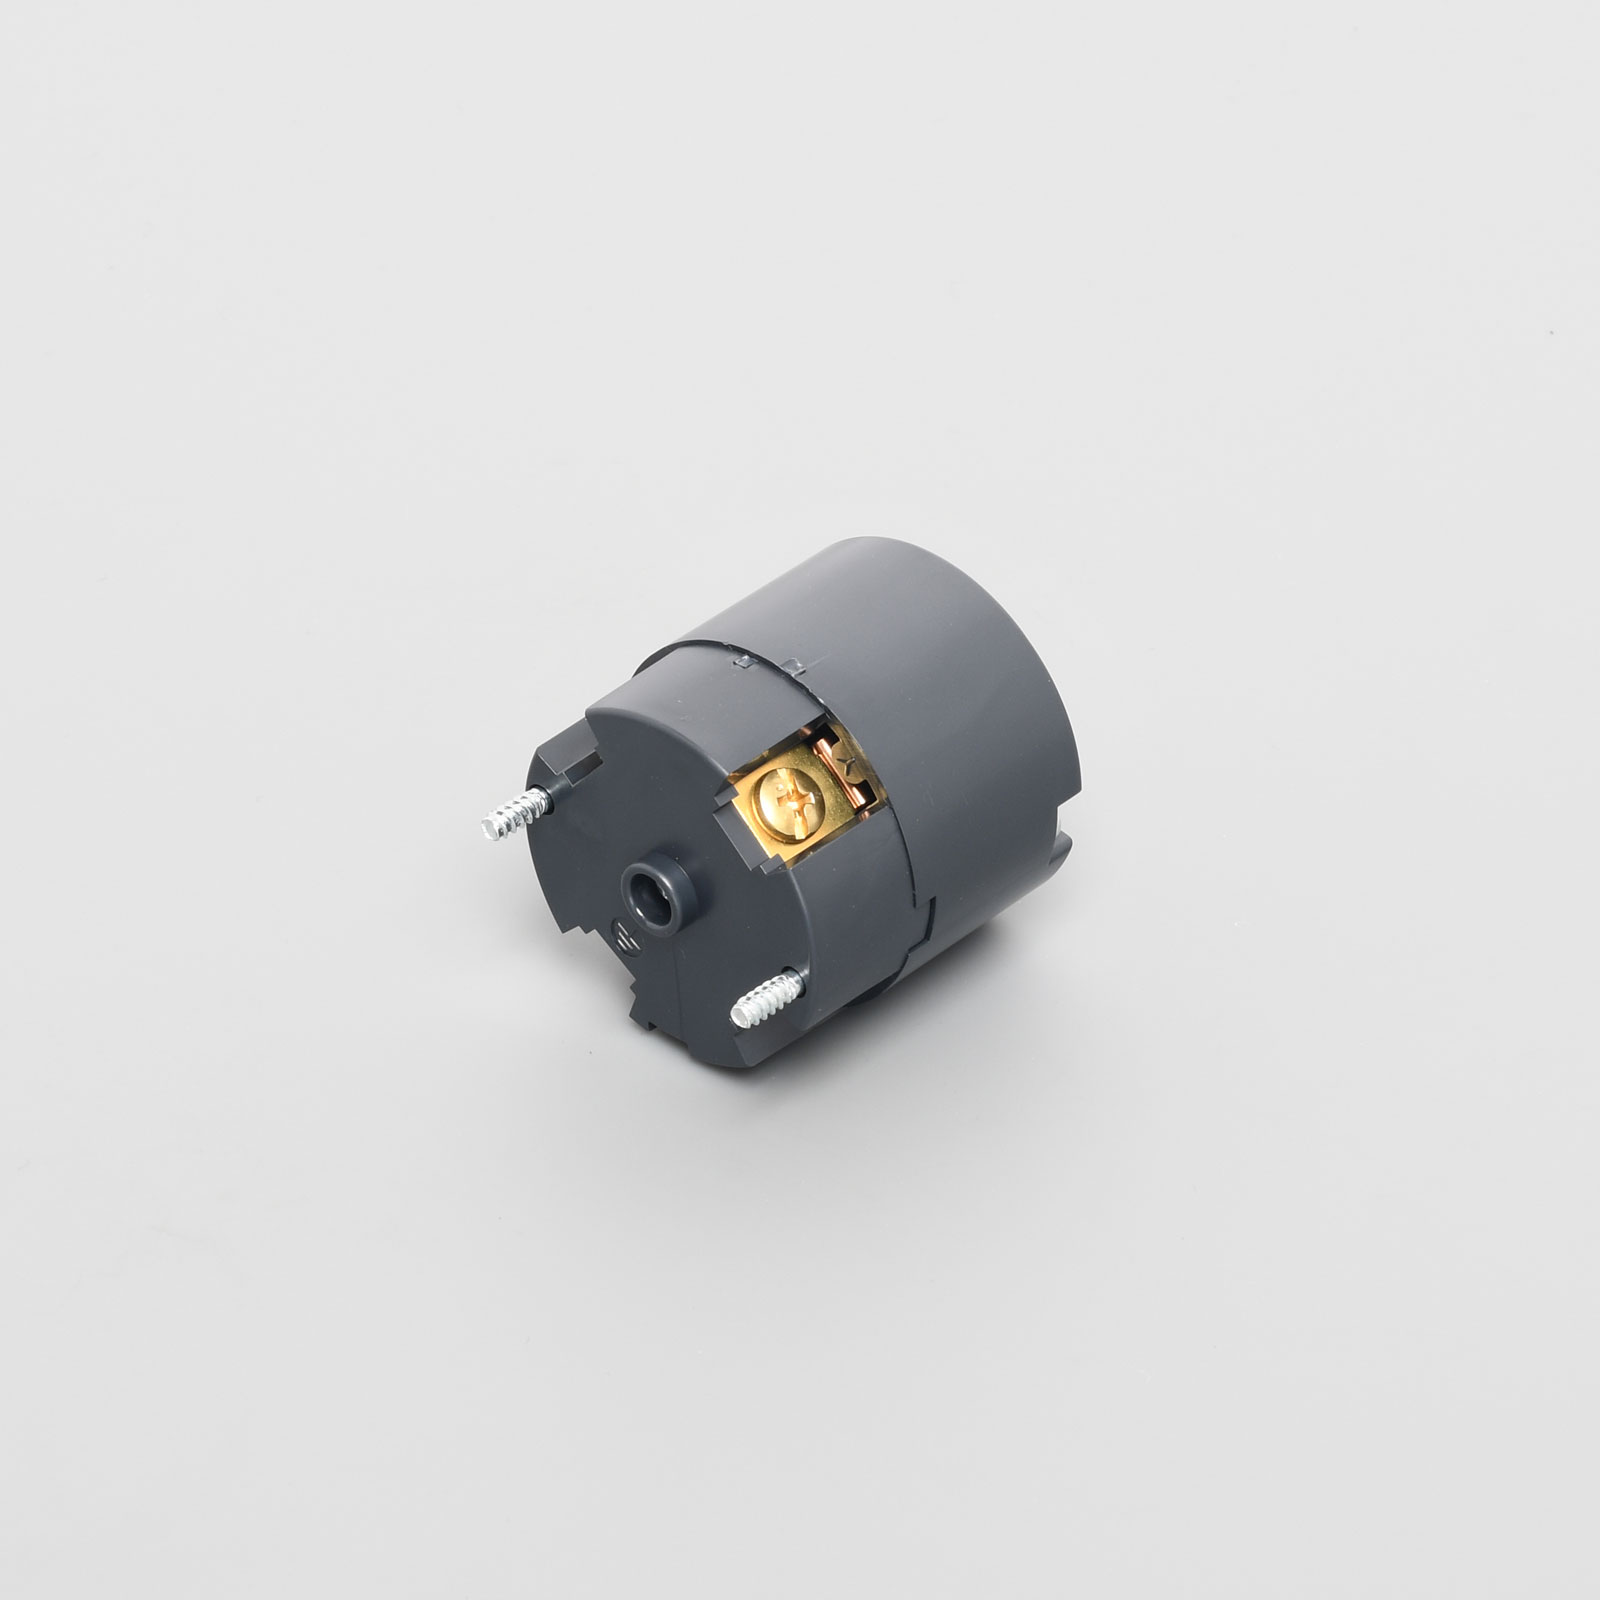 hight resolution of connector body nylon housing